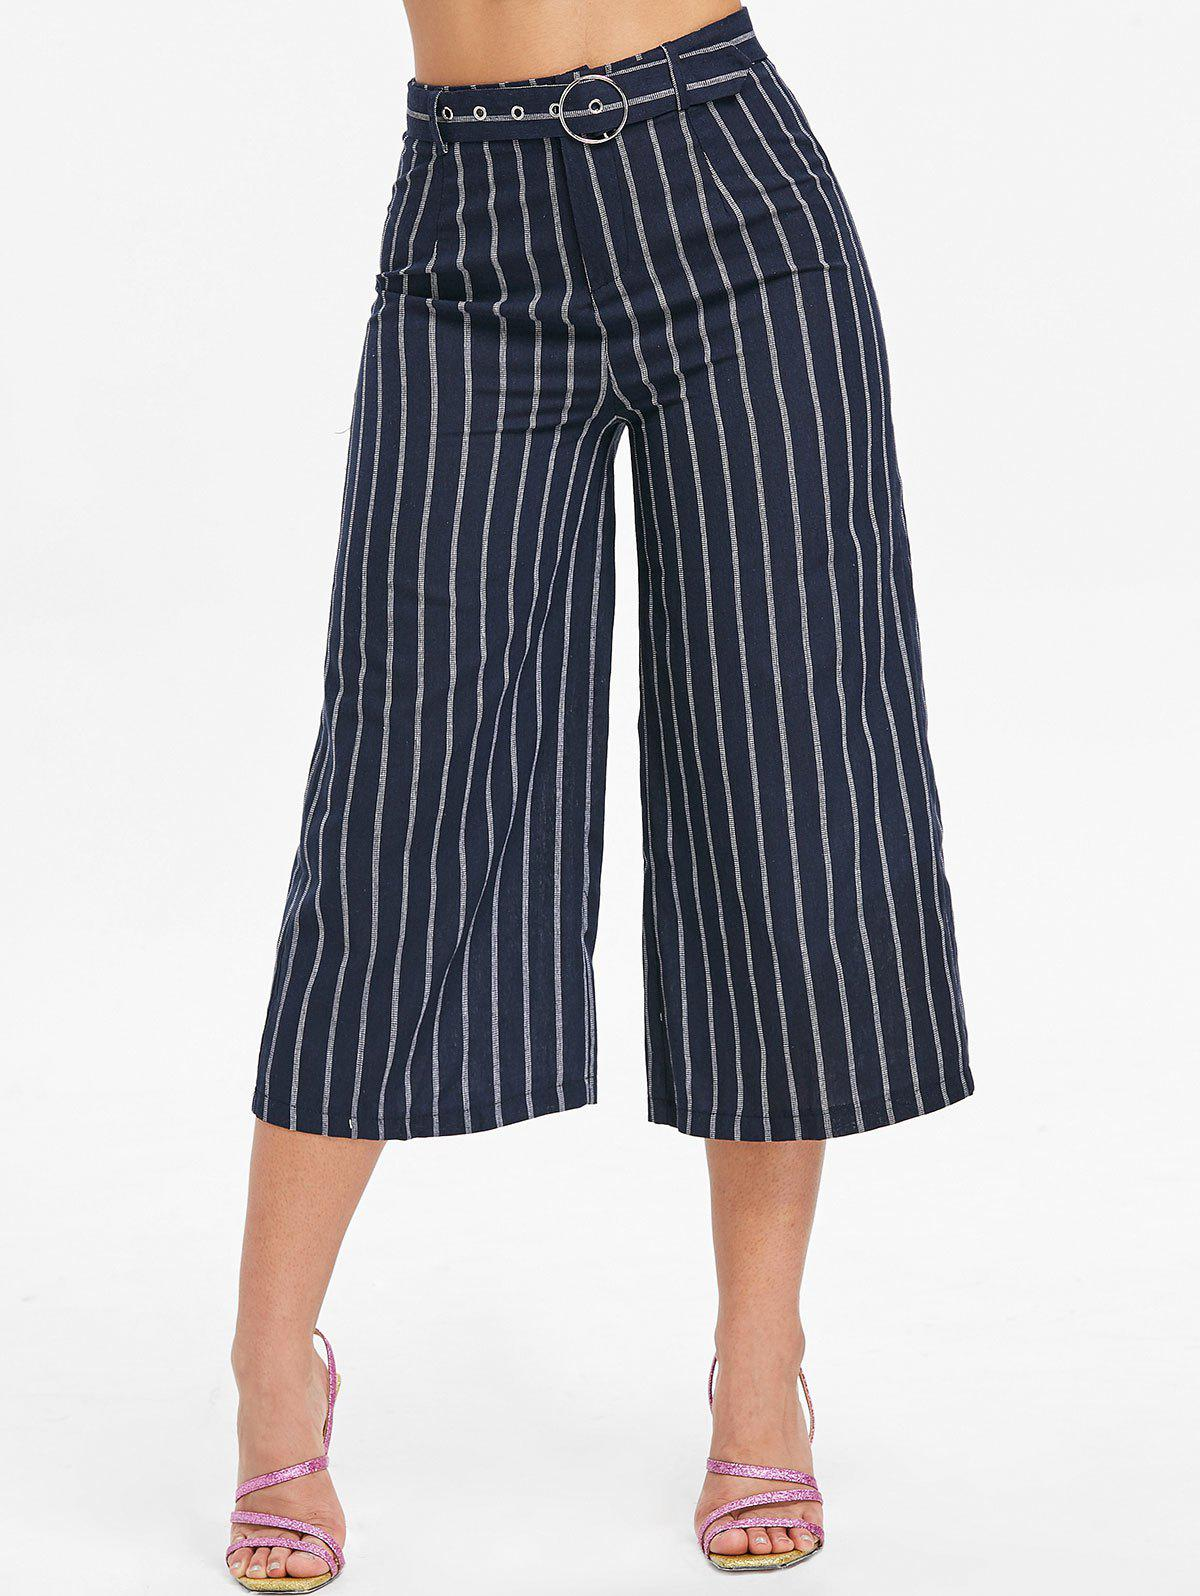 Chic High Waist Striped Capri Pants